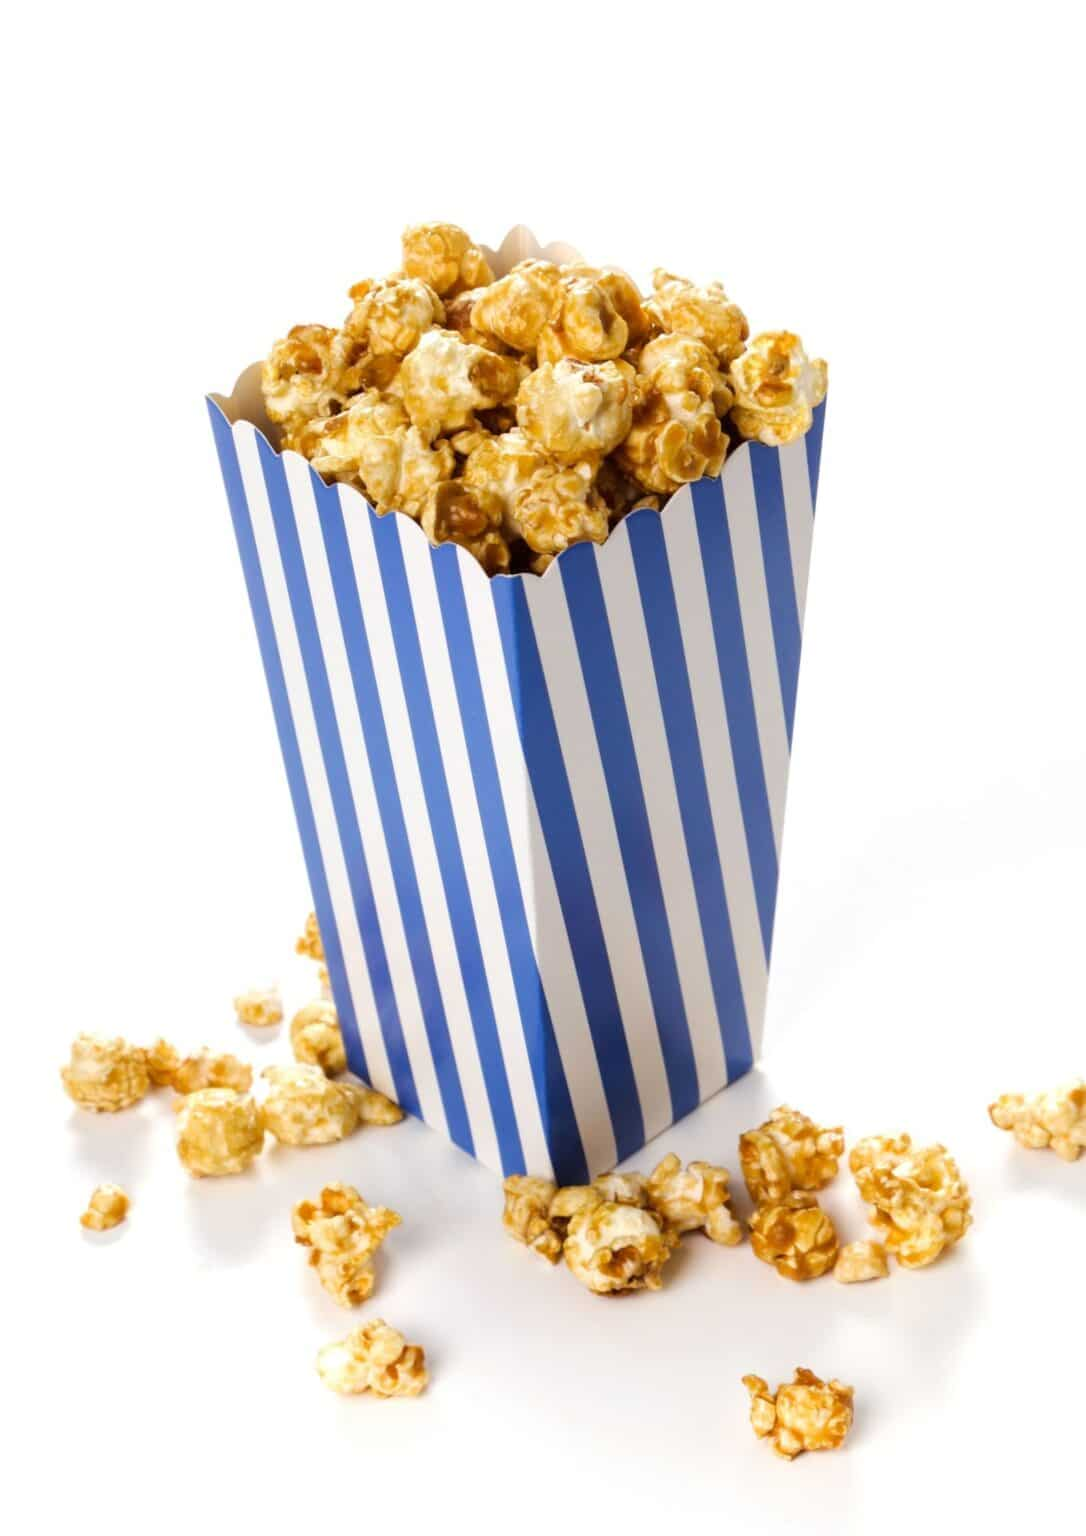 Buying the Best Air Popcorn Popper